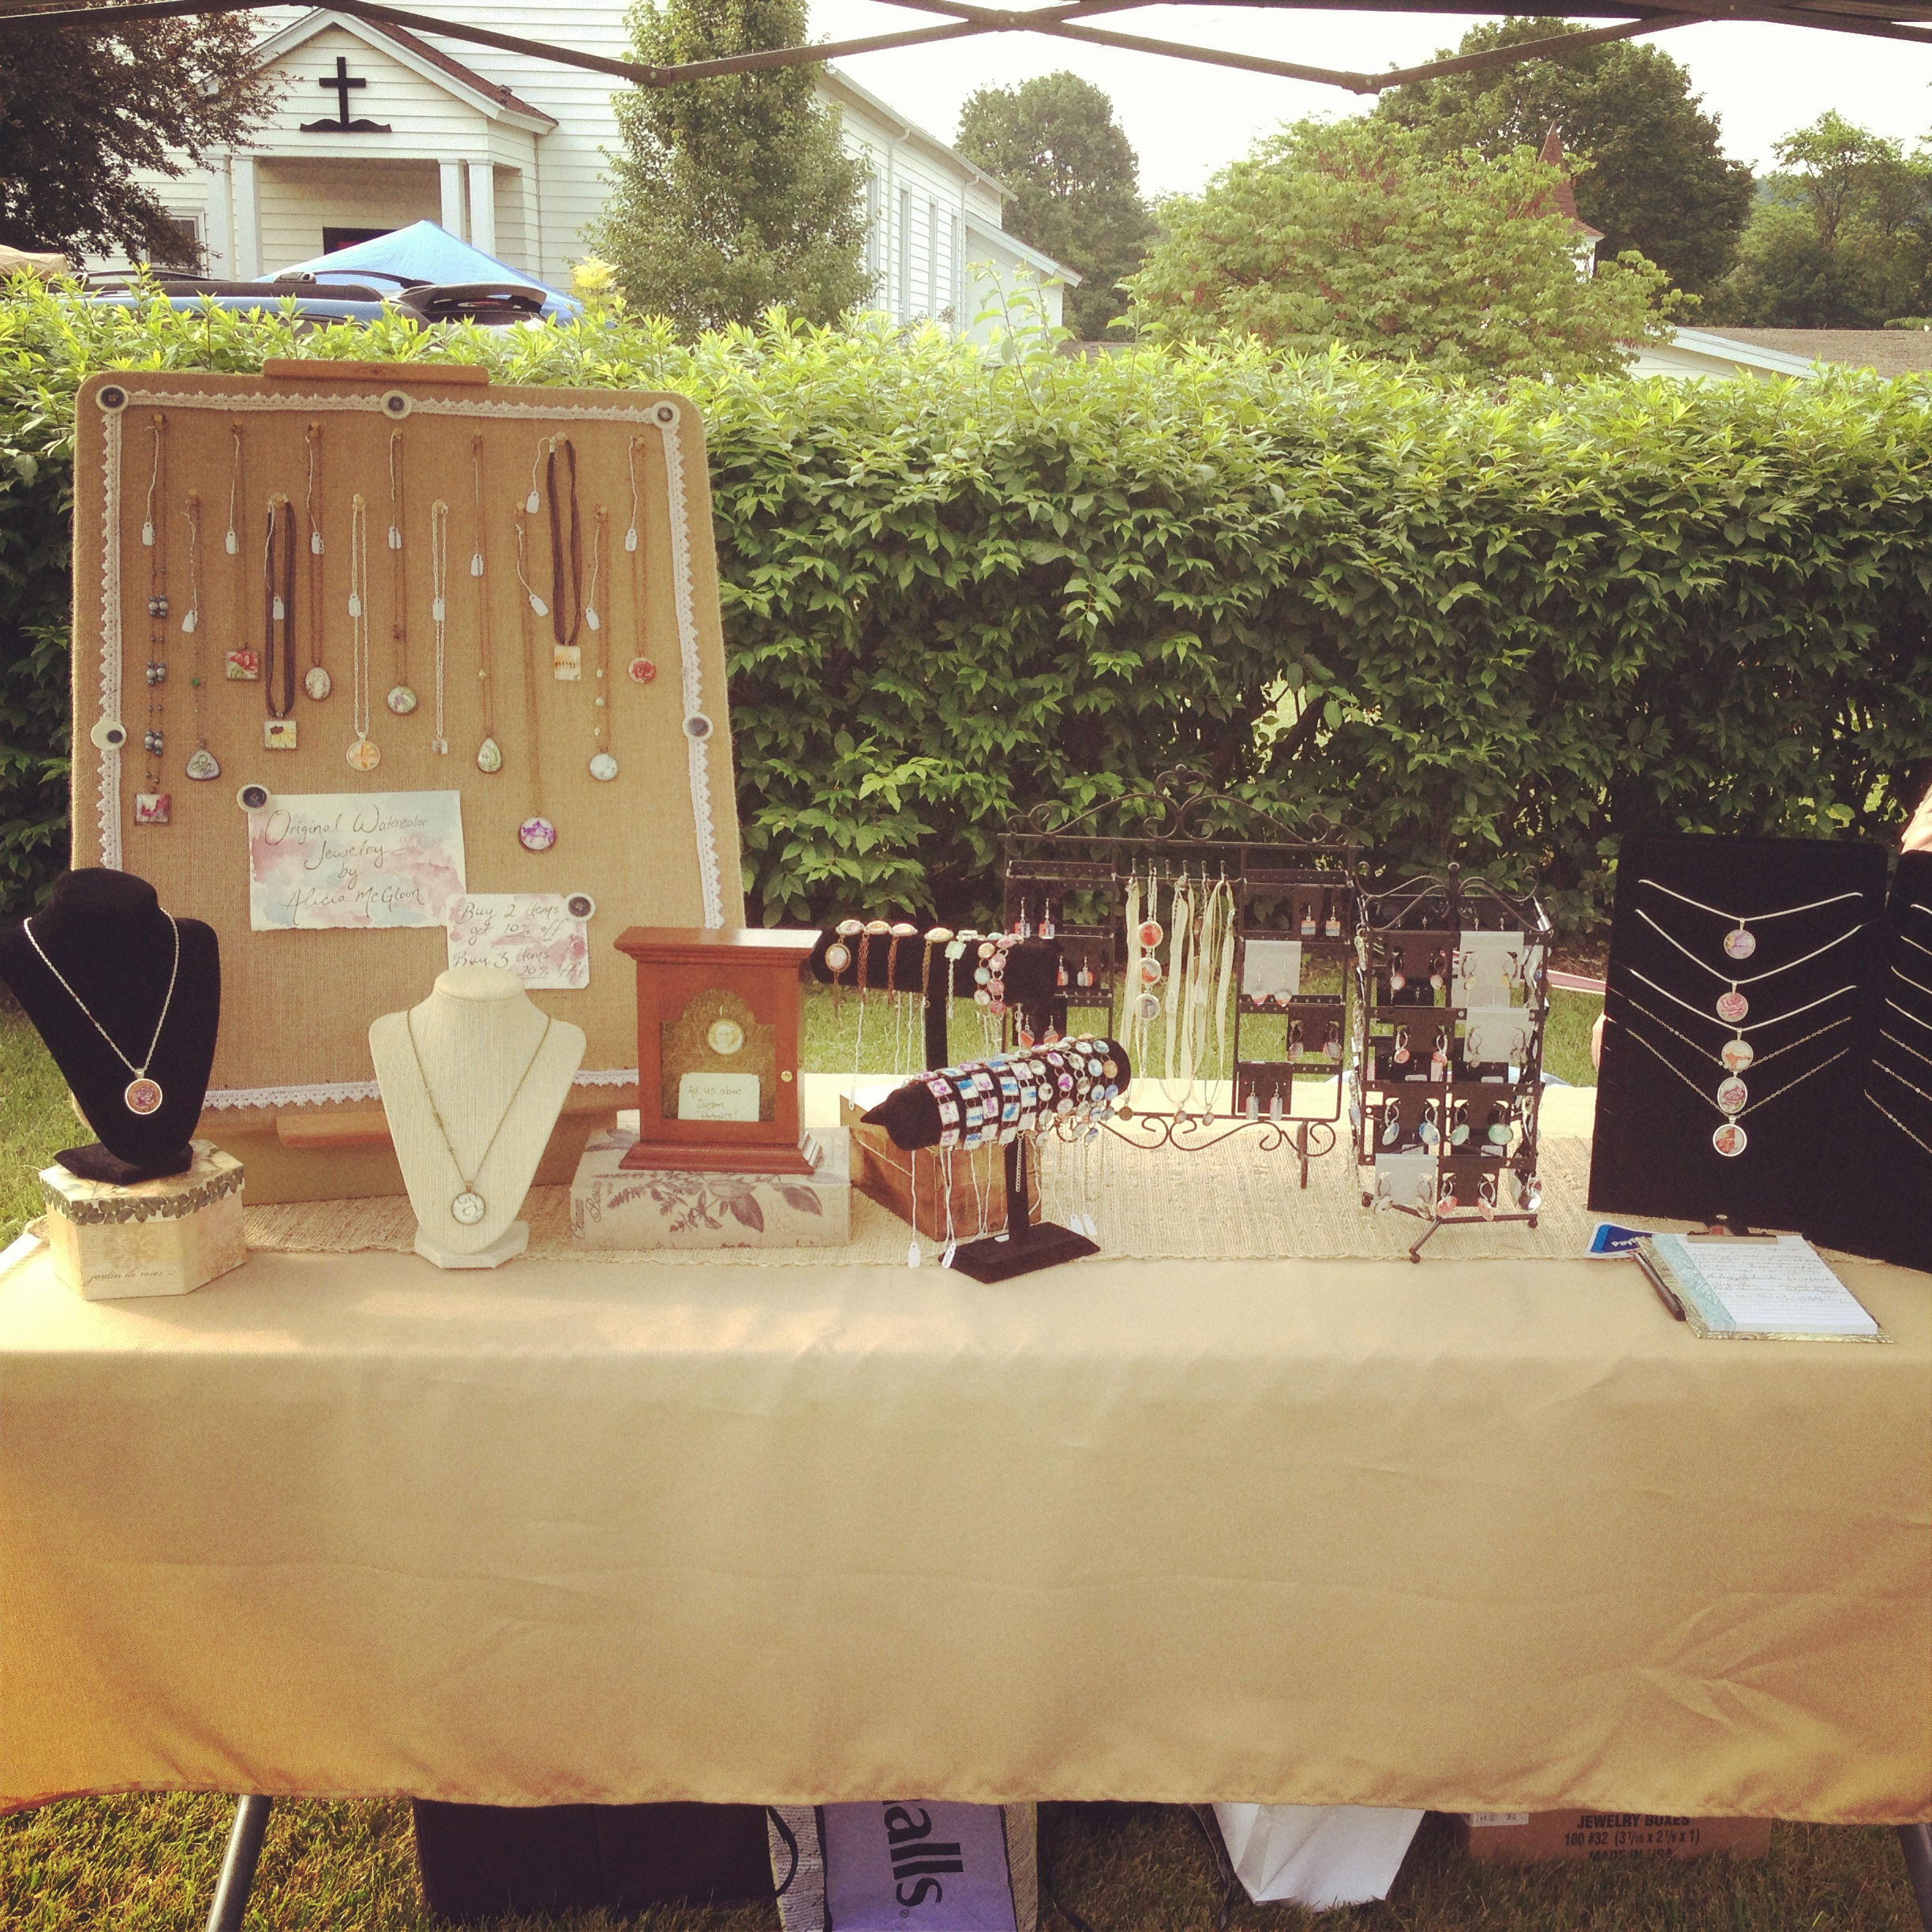 Fairmount Church Craft Fair/Flea Market - 6.22.13